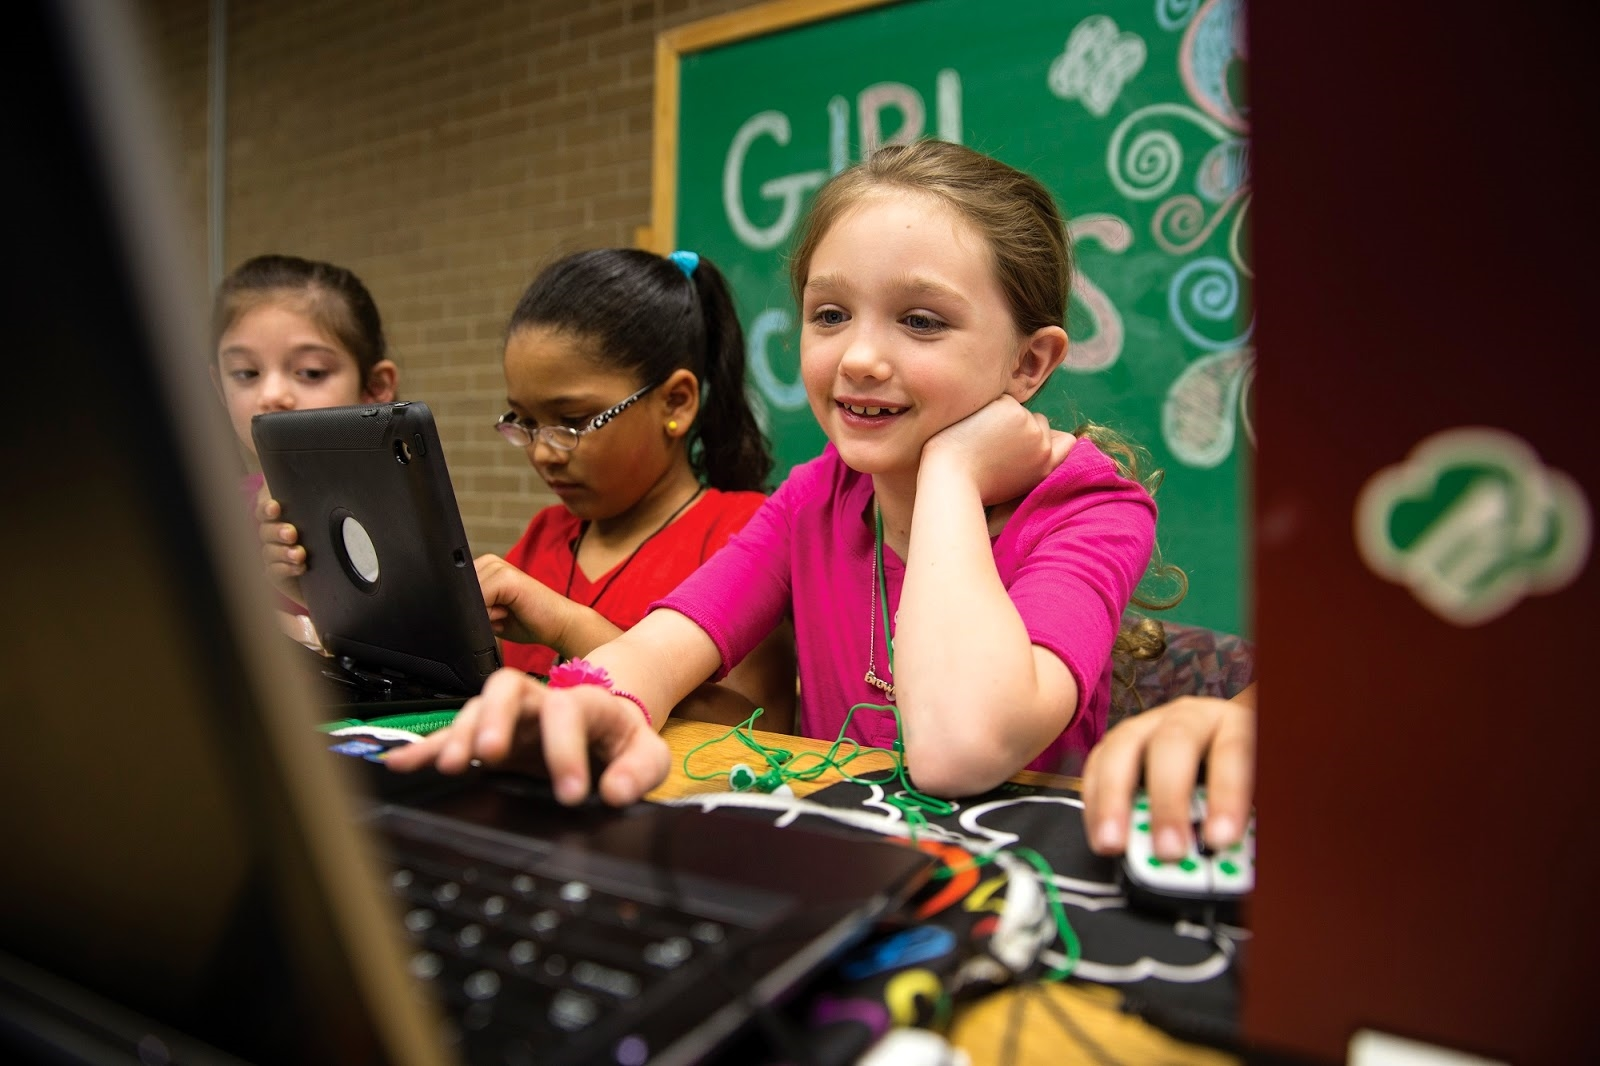 Girl Scouts can start earning cybersecurity badges in fall 2018 | DeviceDaily.com